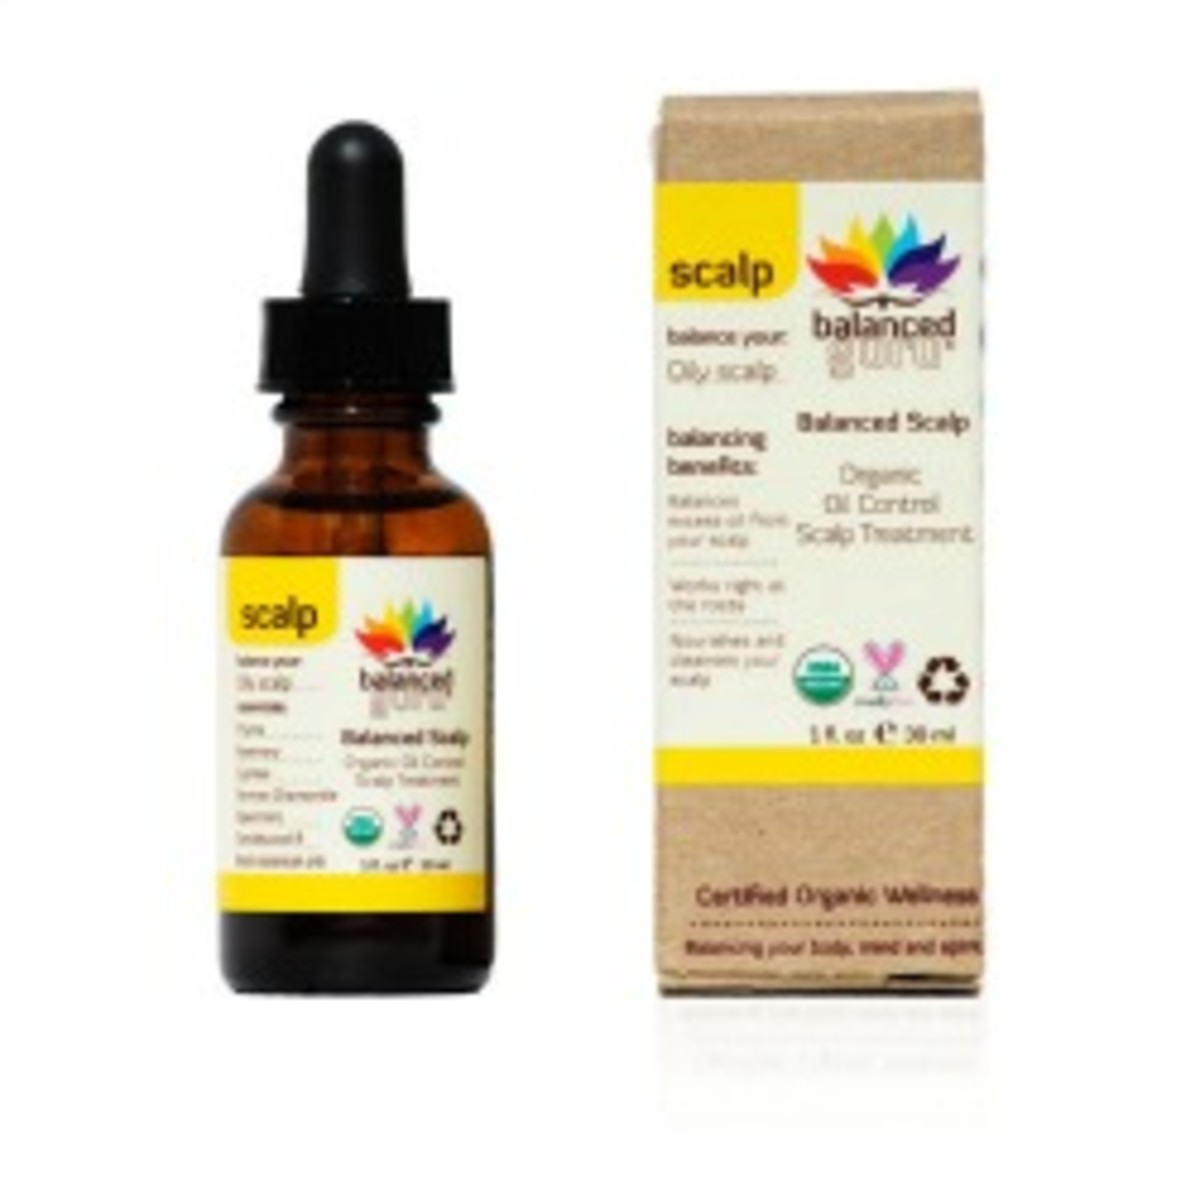 Winter Healthy Hair Secret Balanced Guru Organic Oil Control Scalp Treatment